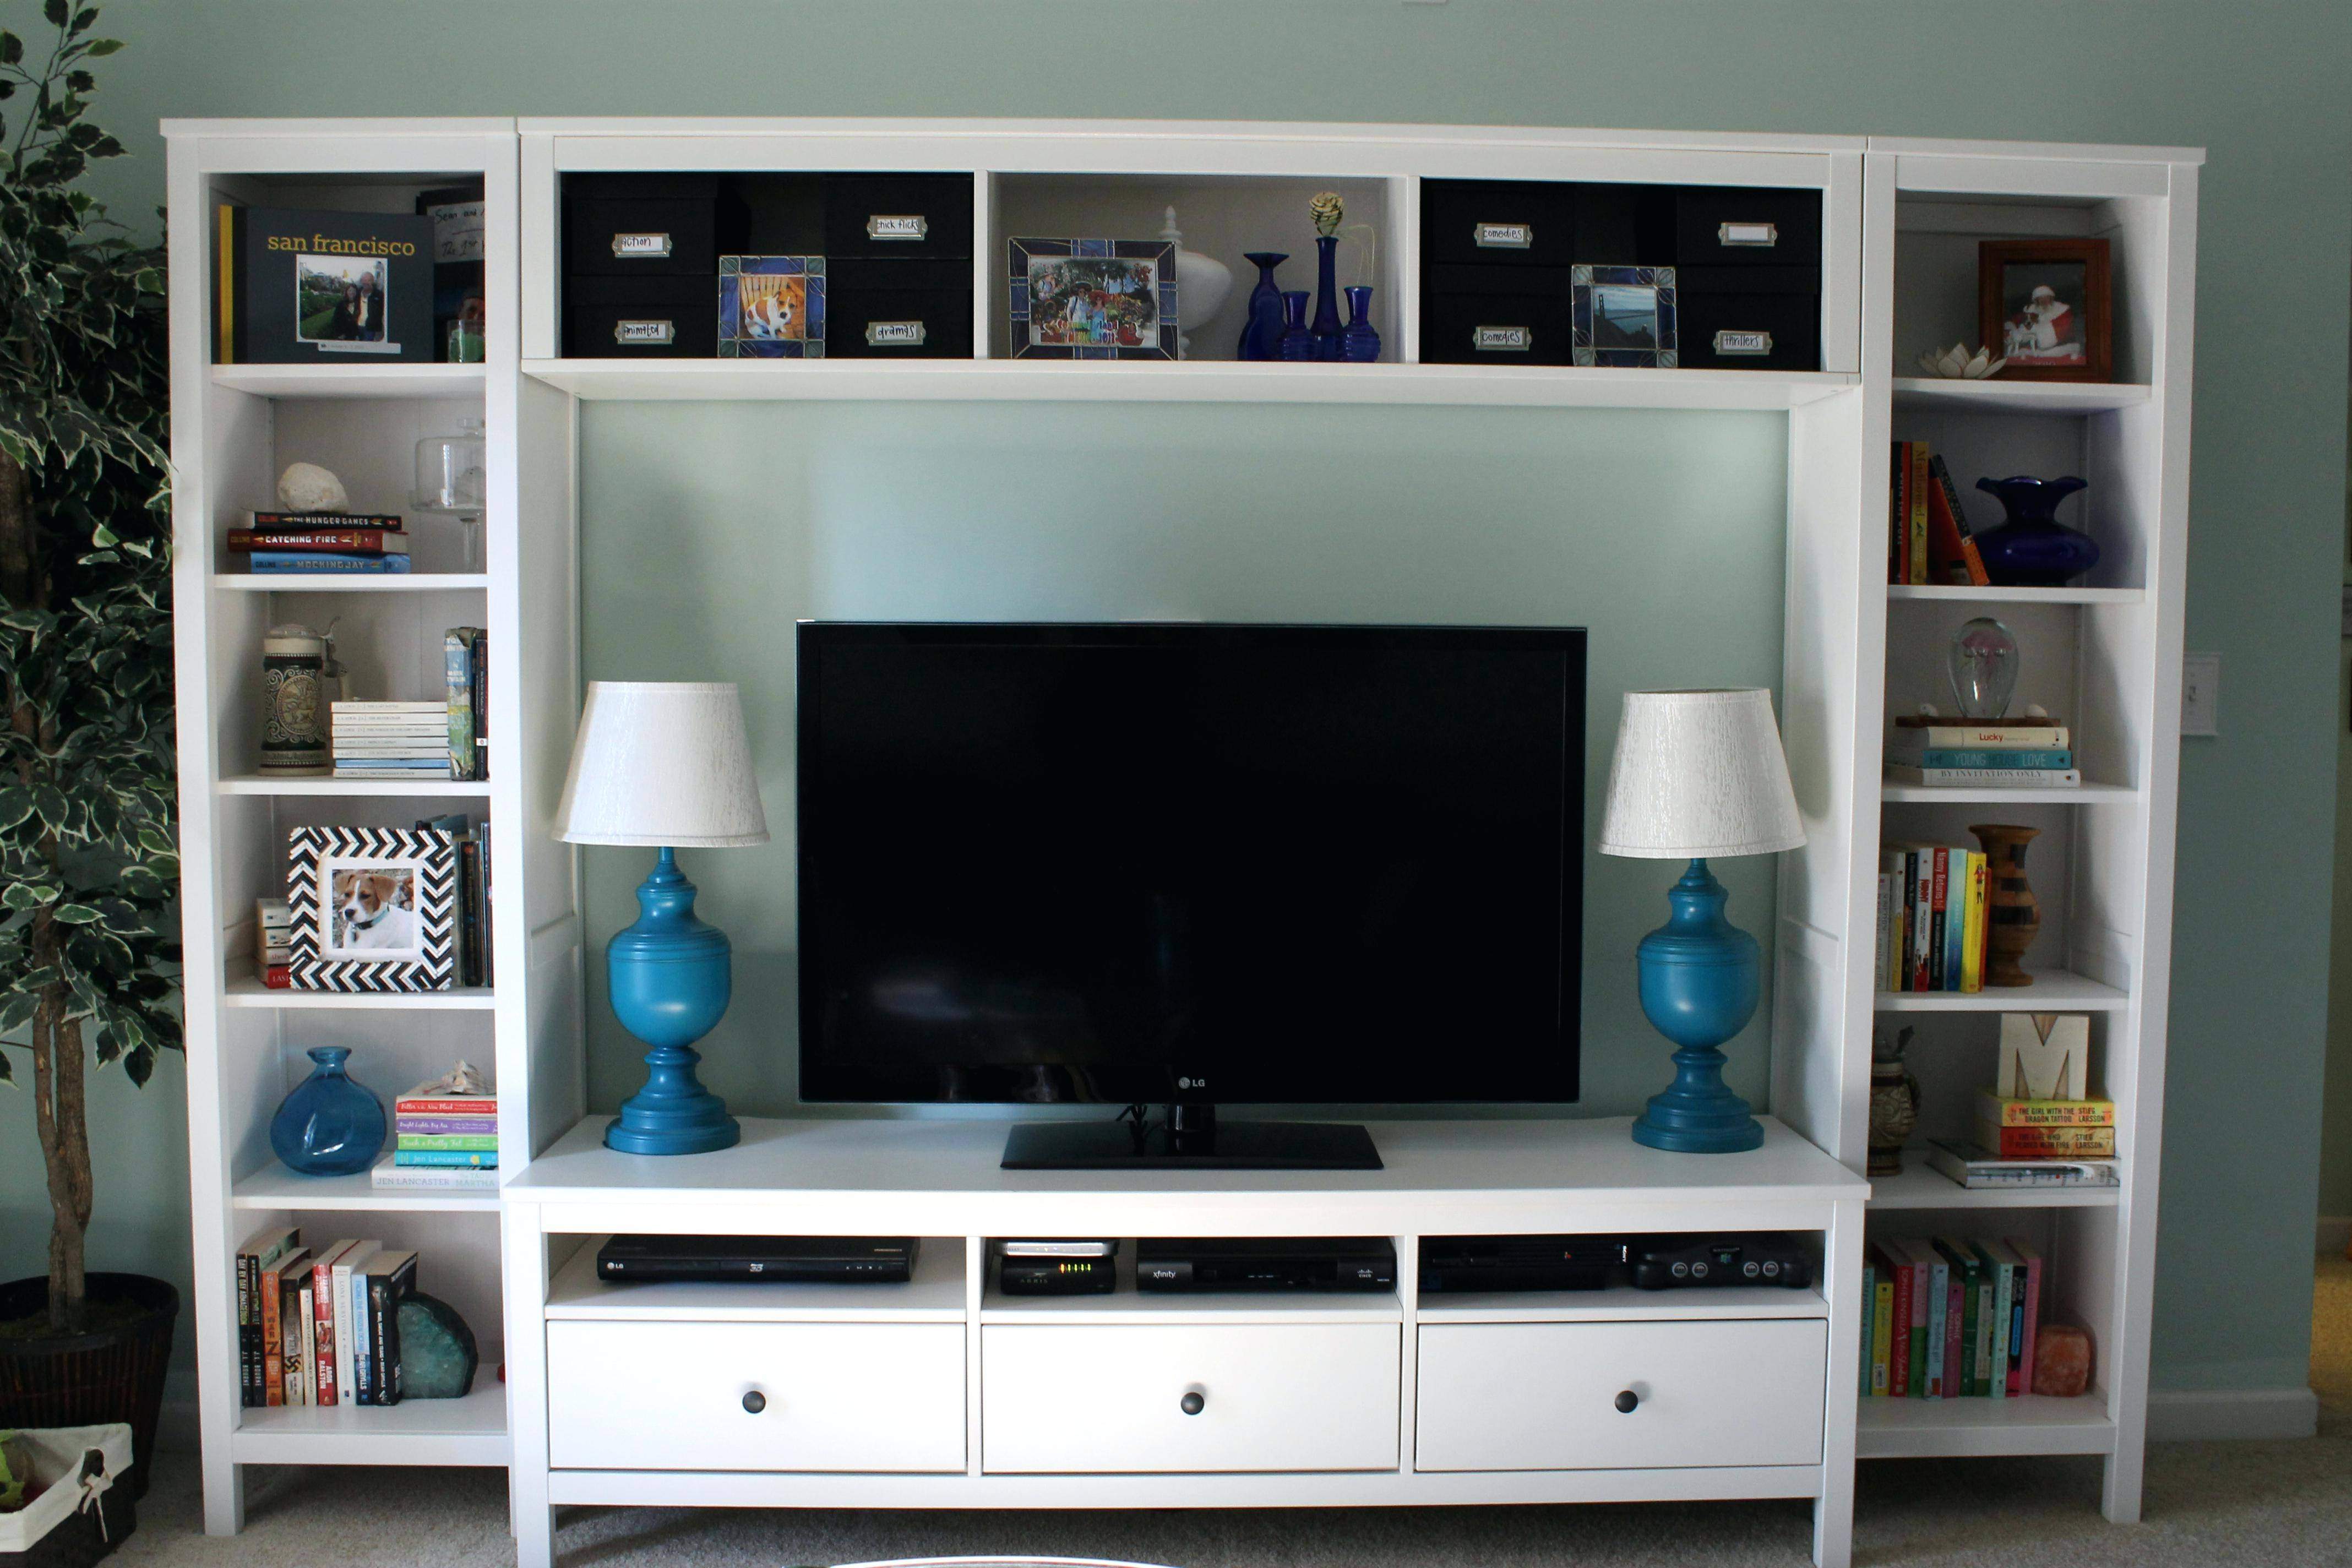 Tv Stand : 81 Surprising Open Bookcase Room Divider Home Design 48 pertaining to Tv Stands With Matching Bookcases (Image 9 of 15)